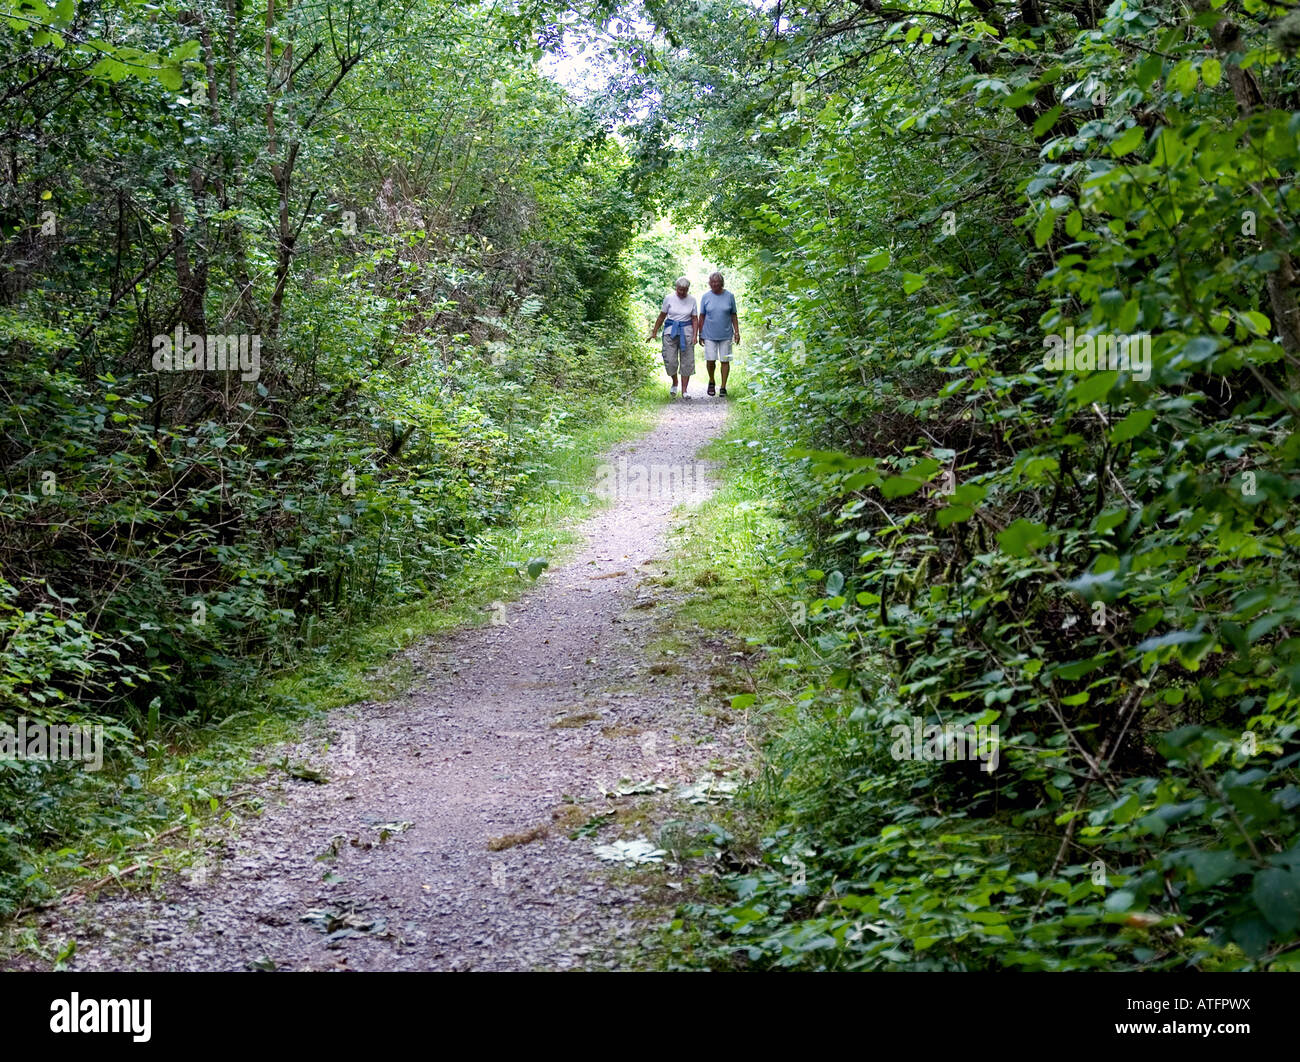 Women on foot path - Stock Image